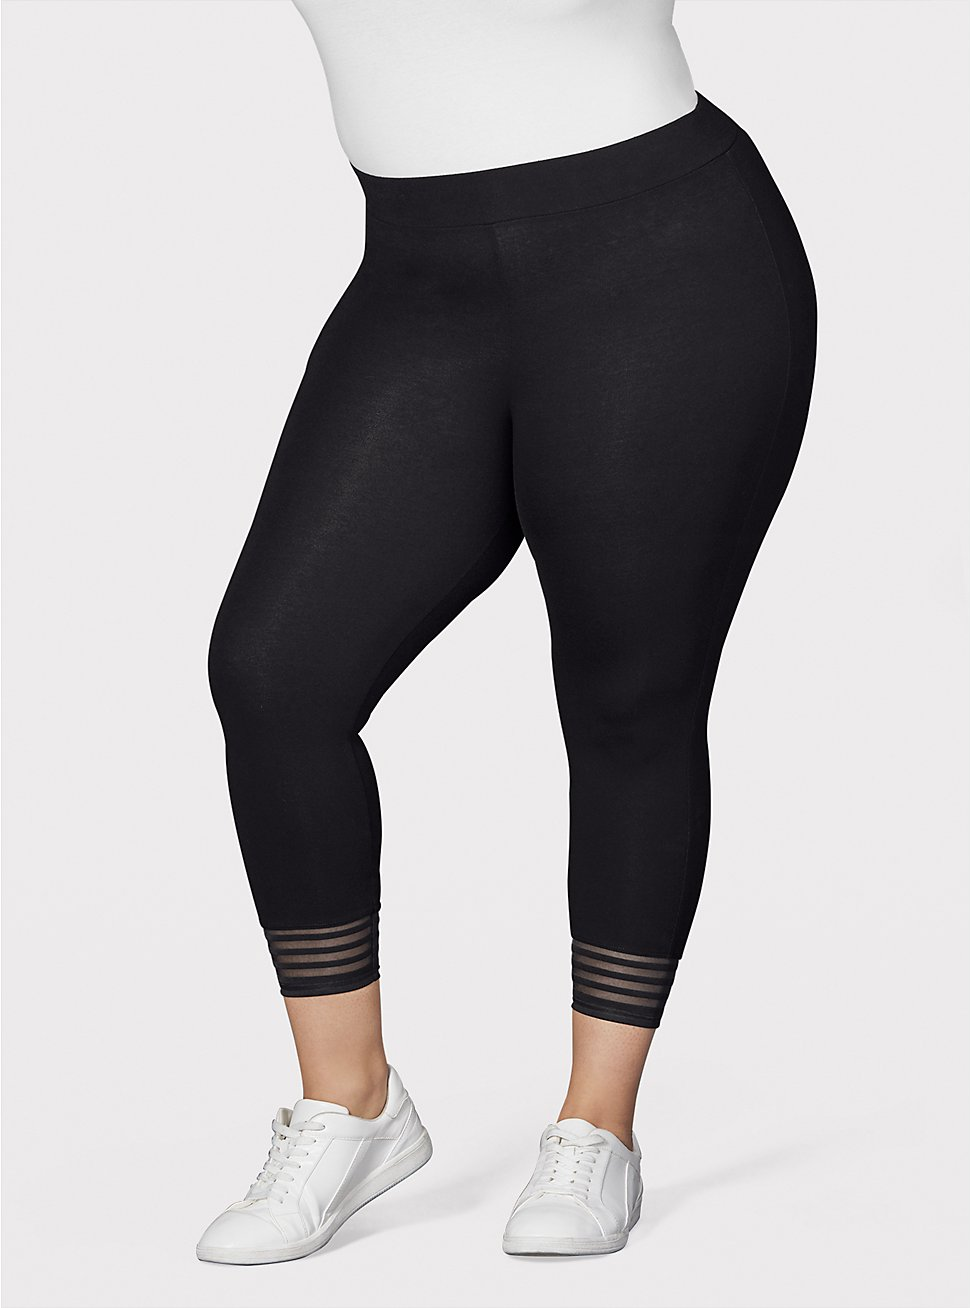 Crop Premium Legging - Shadow Stripe Hem Black, BLACK, hi-res